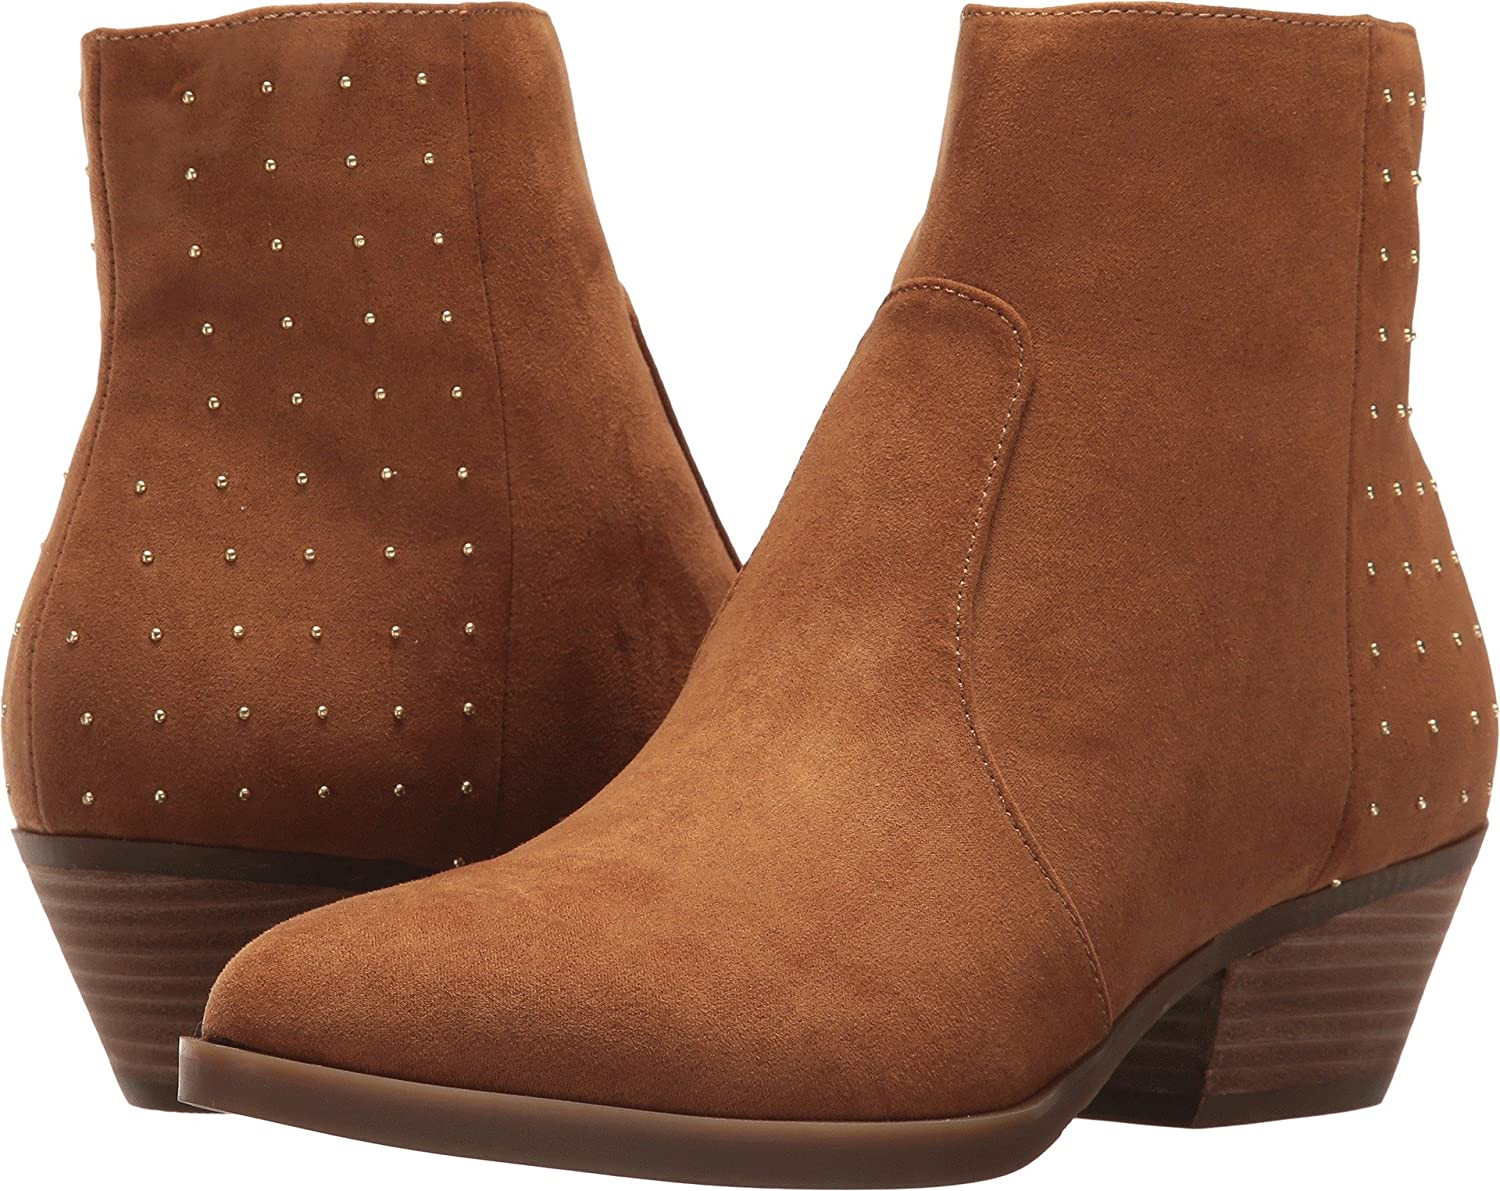 GUESS Women's Velina Ankle Boot